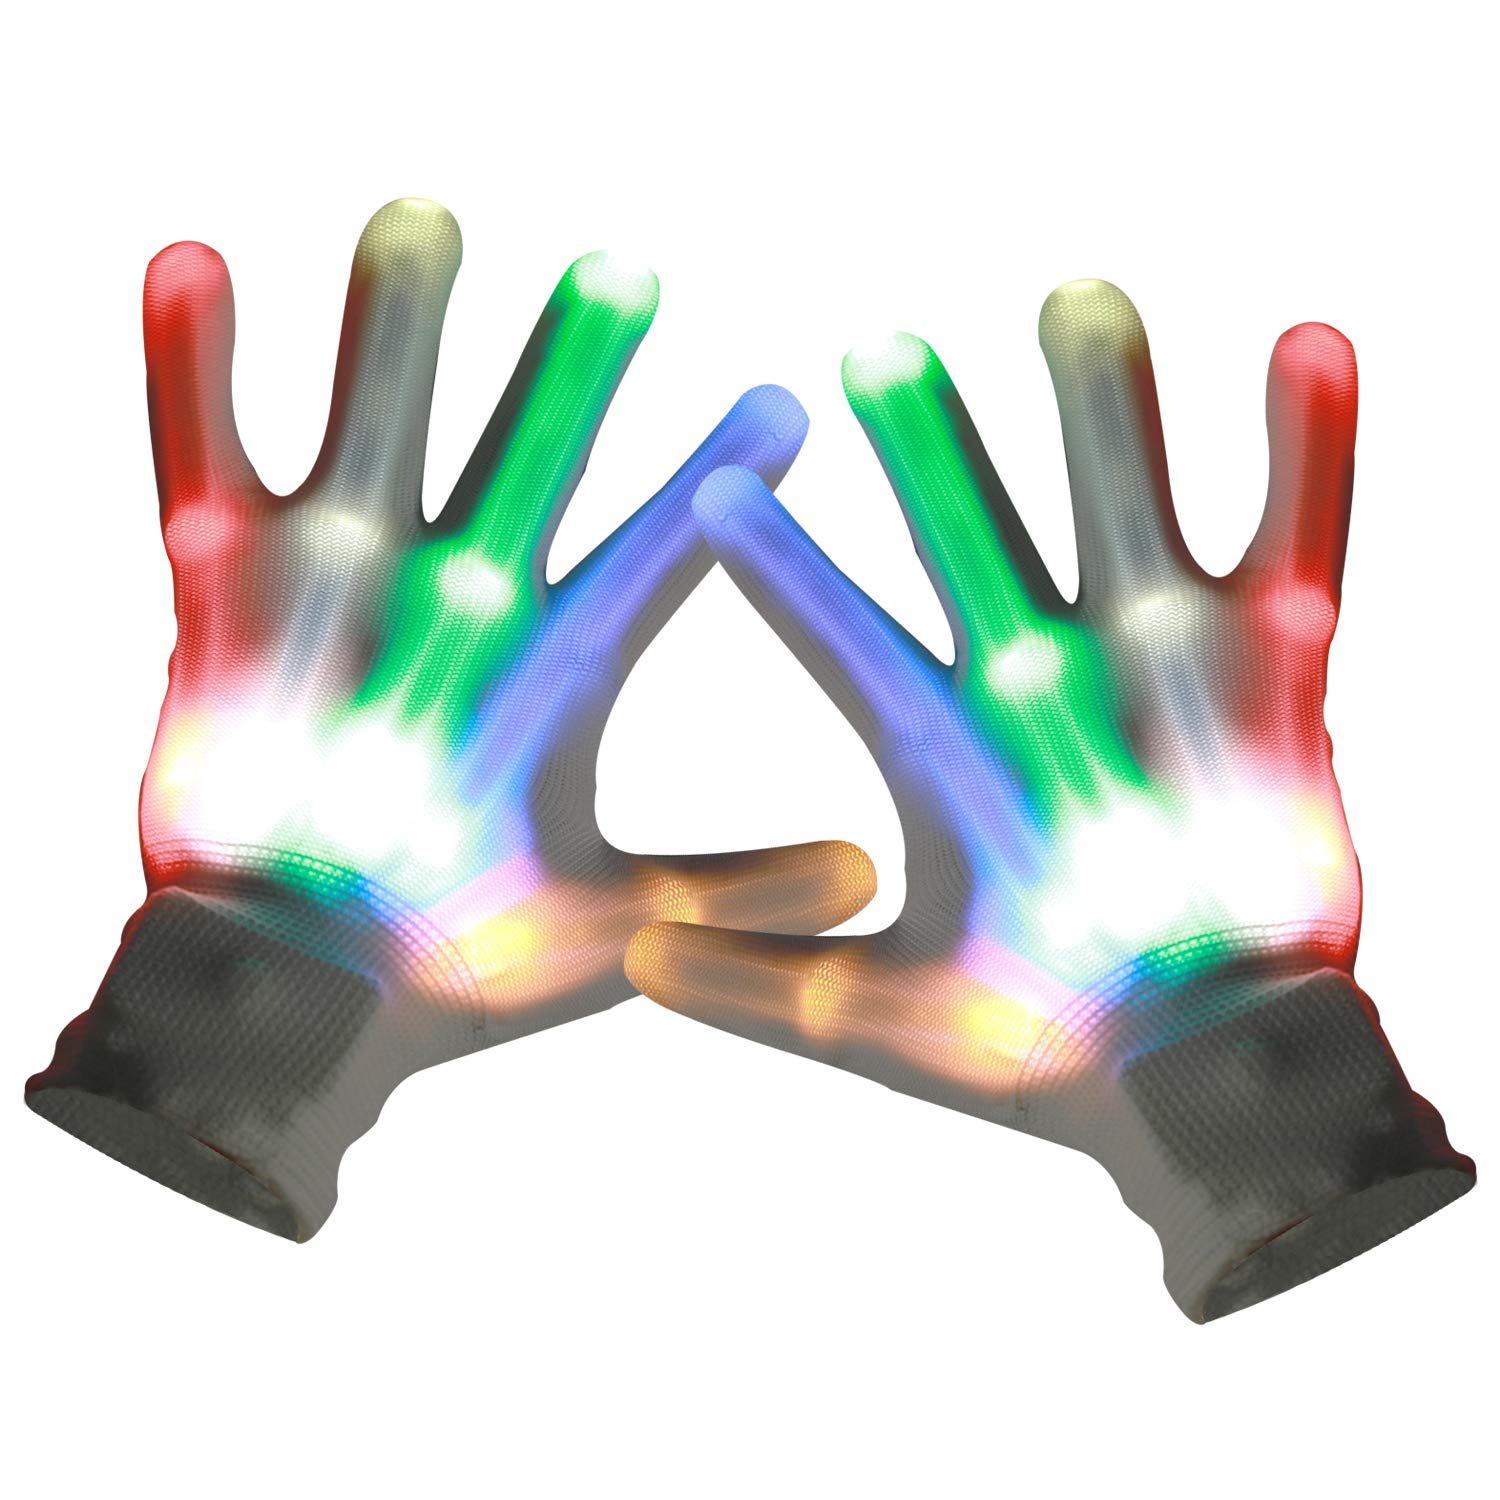 Zooawa LED Flashing Gloves Colorful Finger Lighting Toys 6 Light Flashing Modes Gloving for Halloween Clubbing Dancing Show Costume Party Rainbow Color